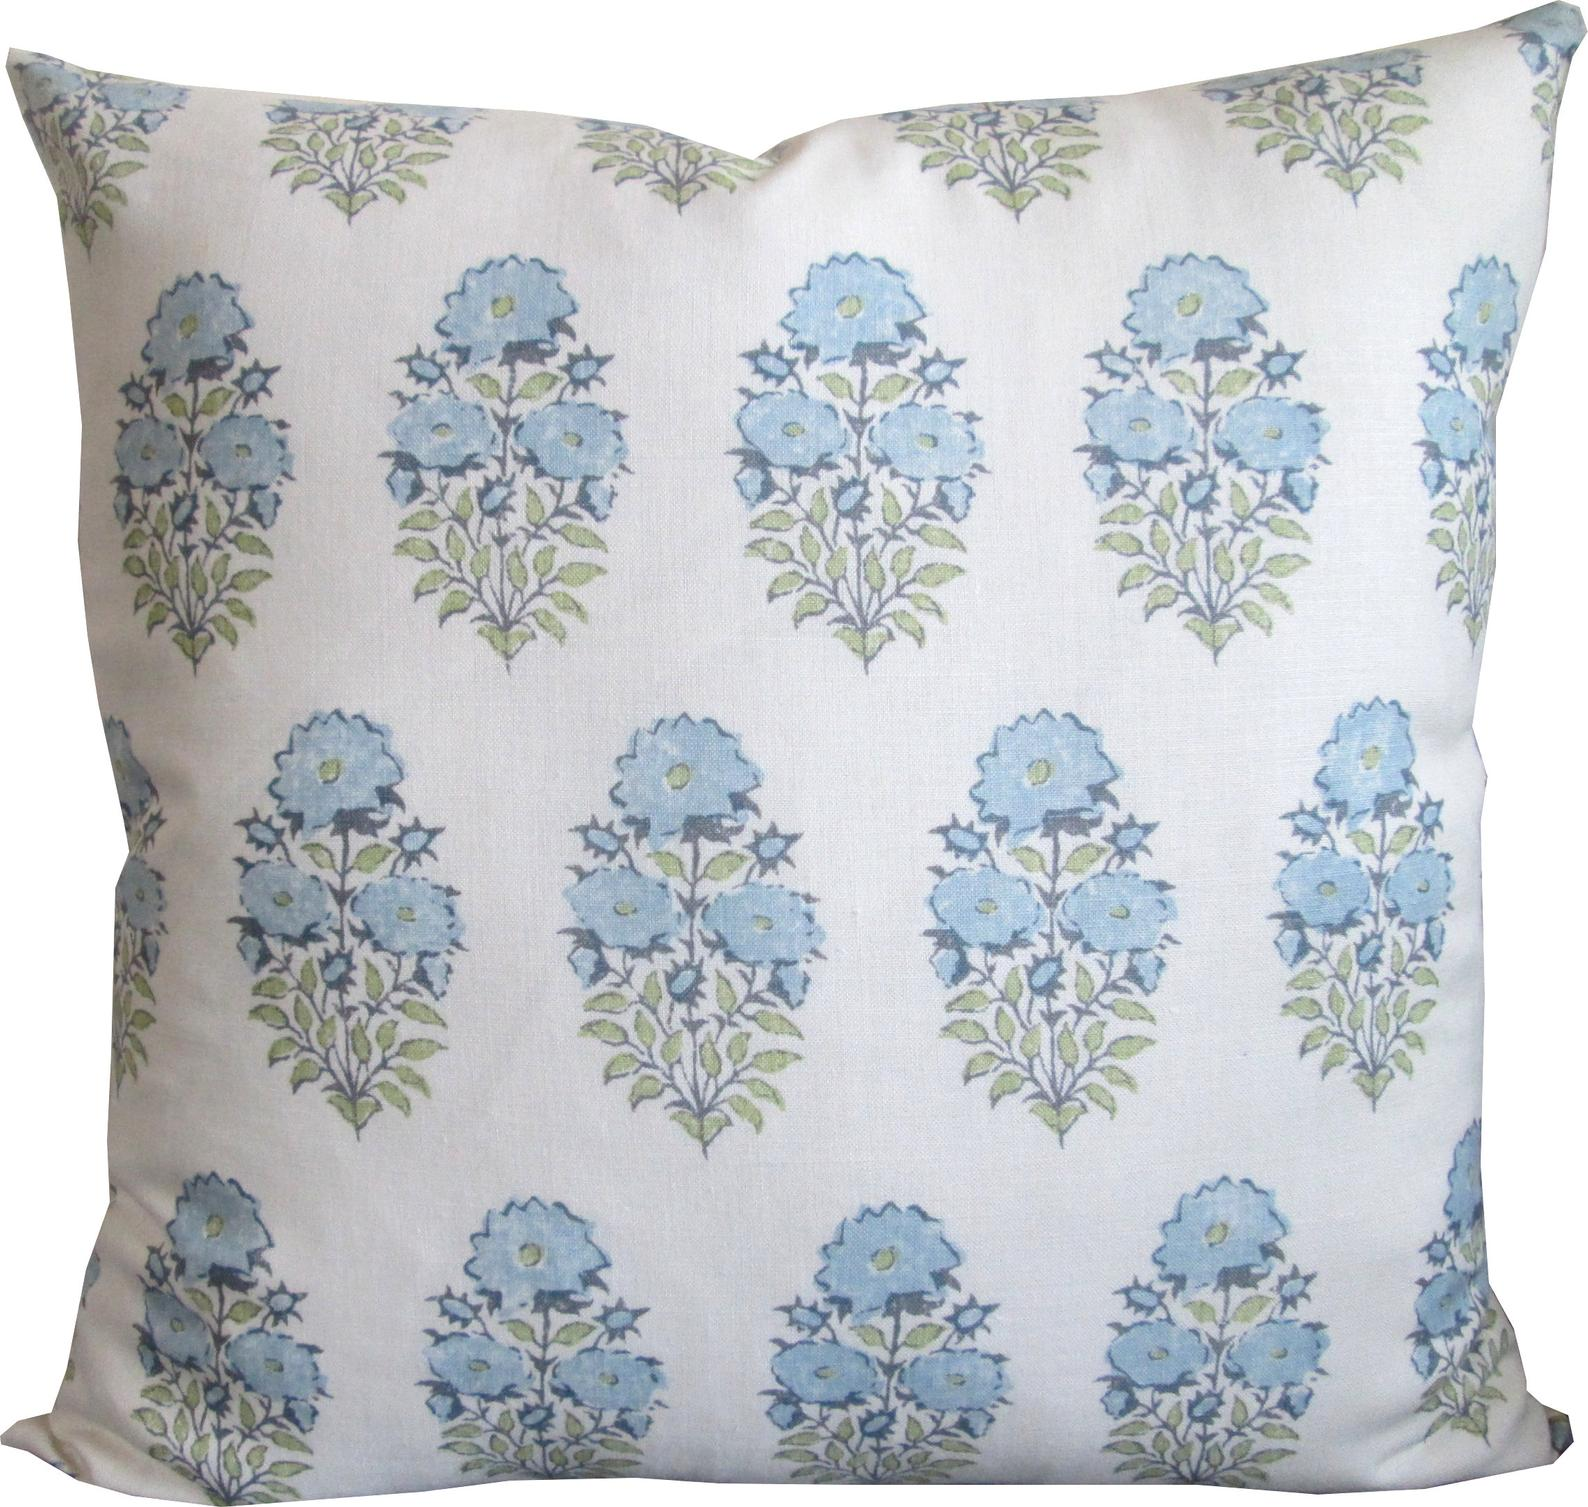 Mughal Flower In Monsoon Decorative Accent Pillow